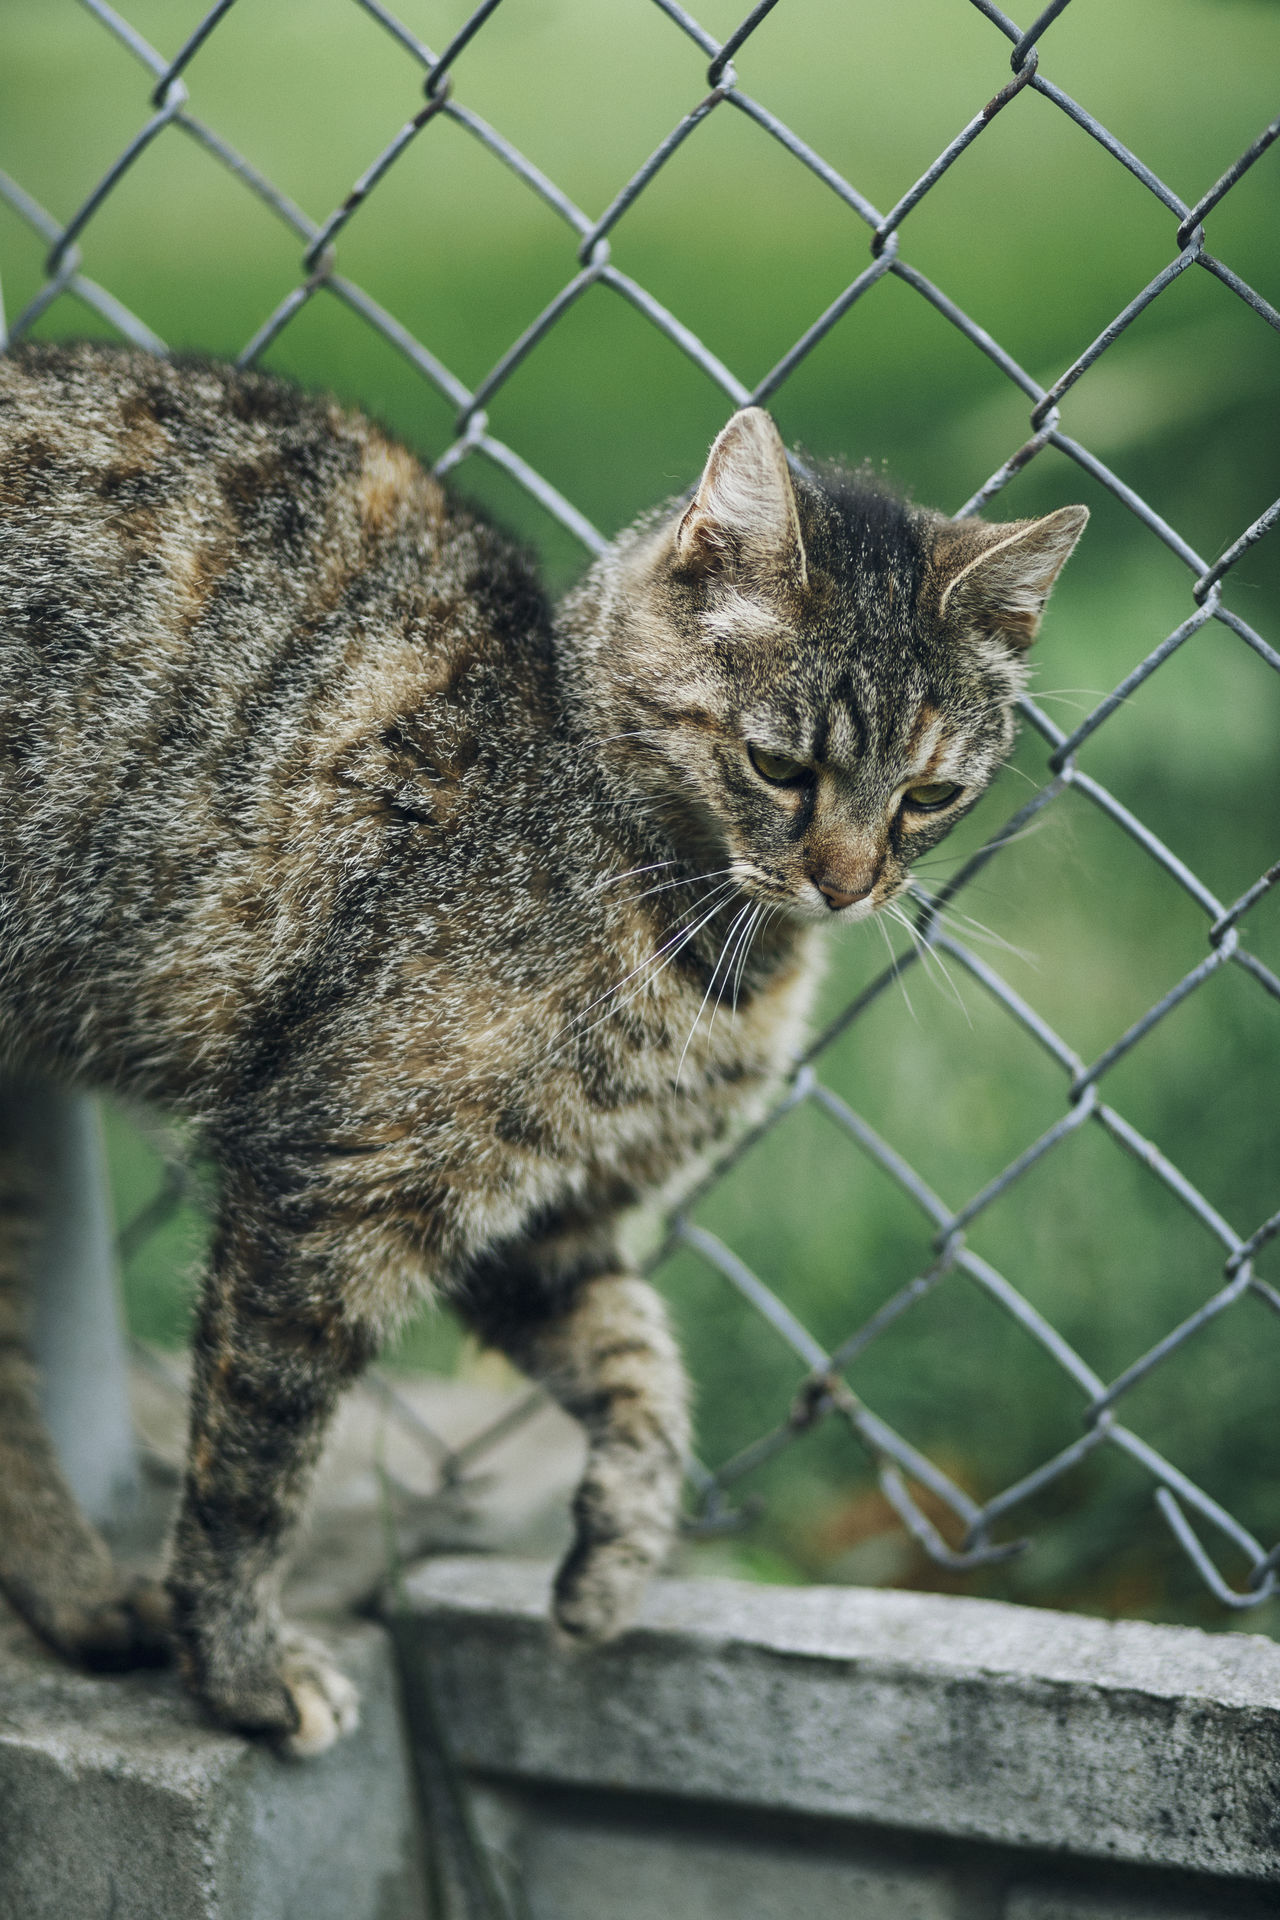 Lazy Sunday in Mielec, Poland. Animal Themes Carnivora Chainlink Fence Close-up Day Domestic Animals Domestic Cat Feline Focus On Foreground Mammal Metal No People One Animal Outdoors Pets Protection Safety Security